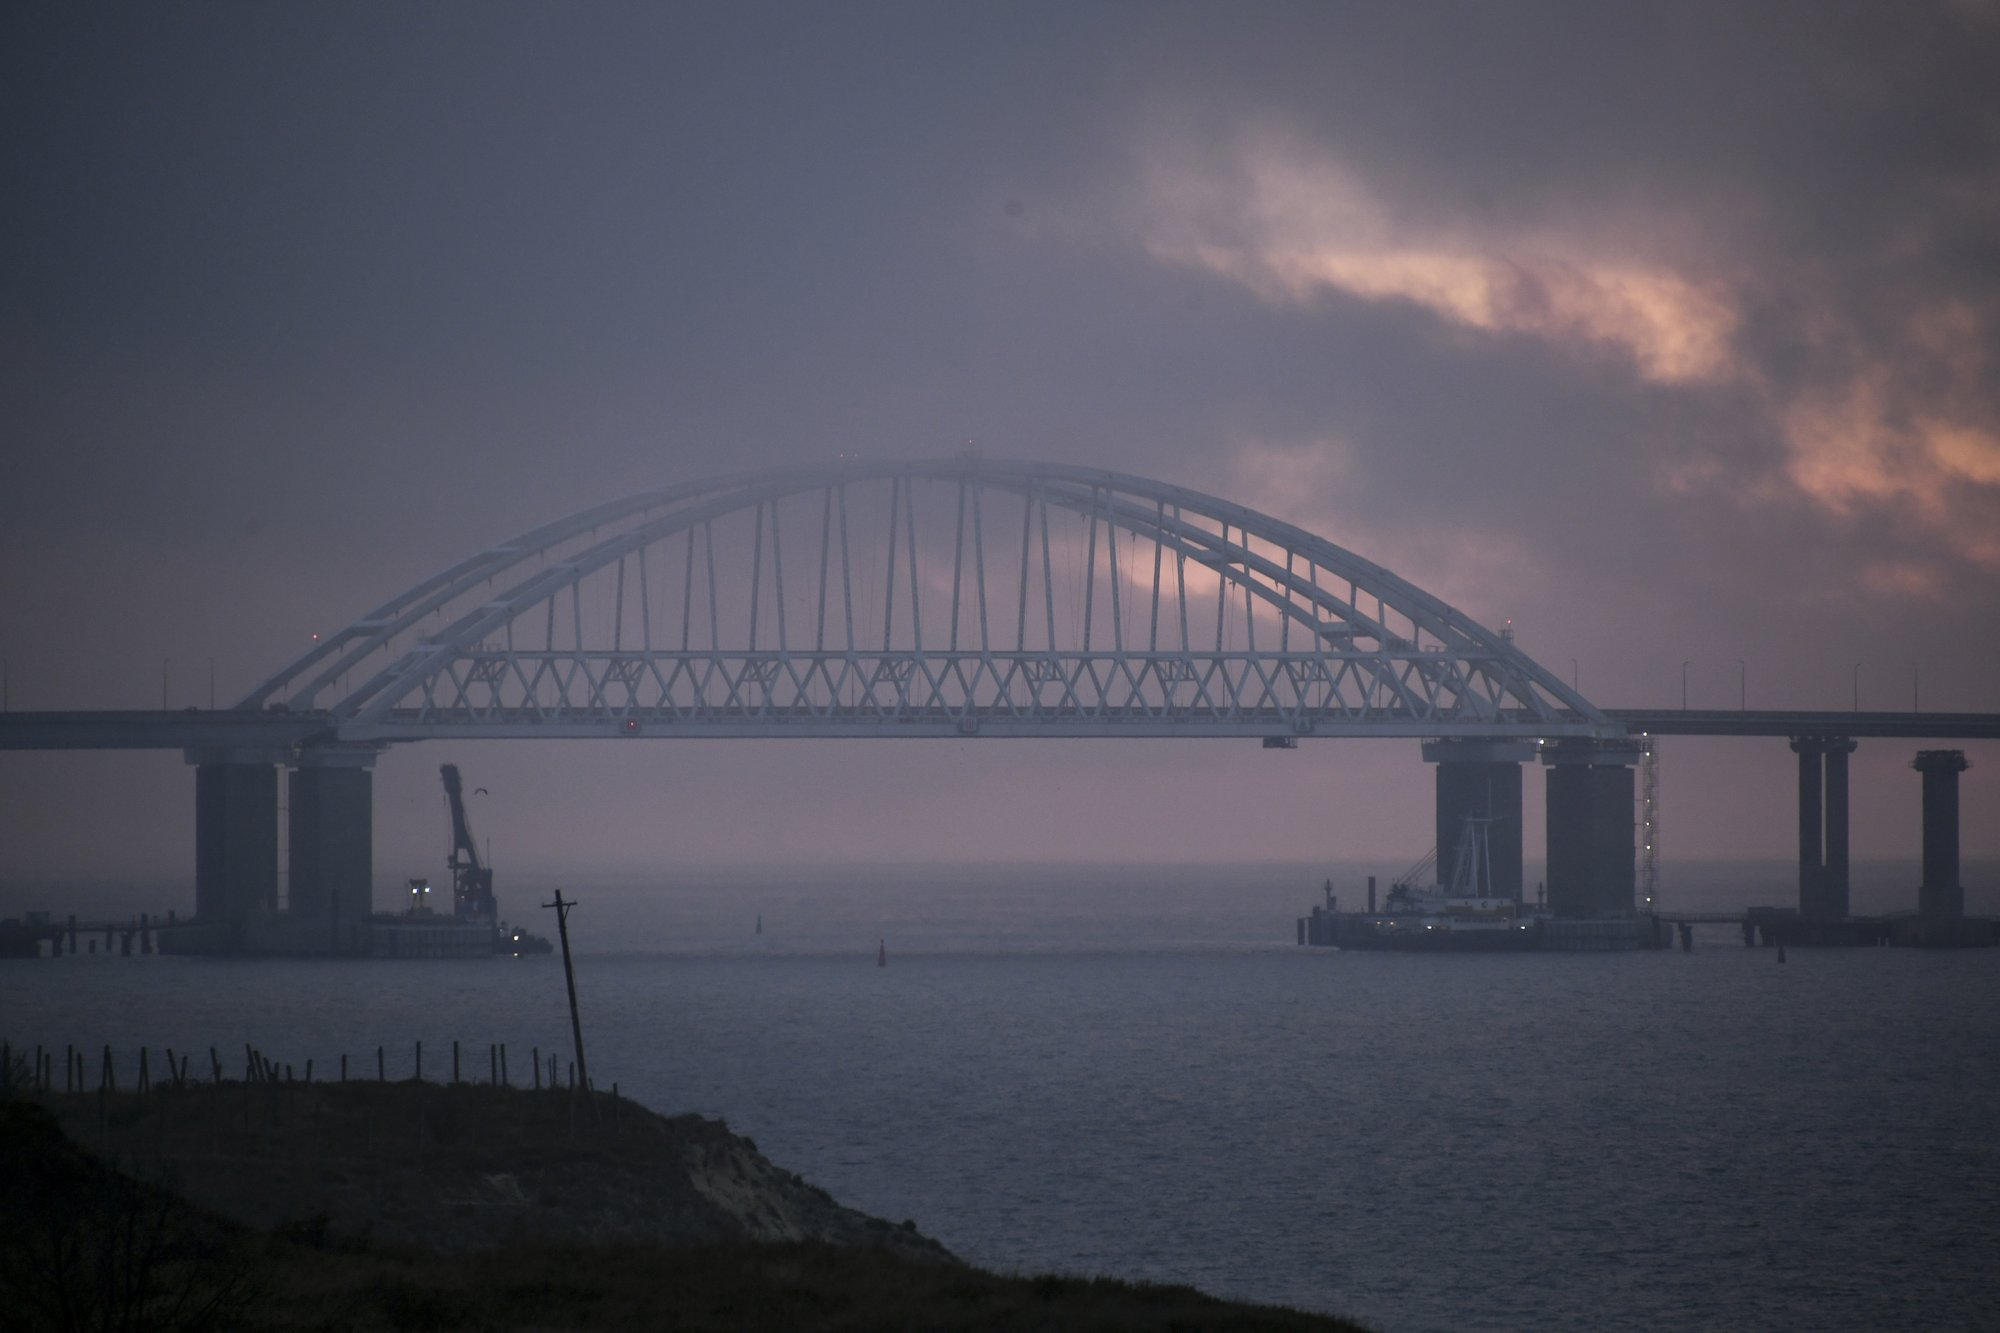 Russia says UN convention does not apply to resolving Kerch Strait dispute